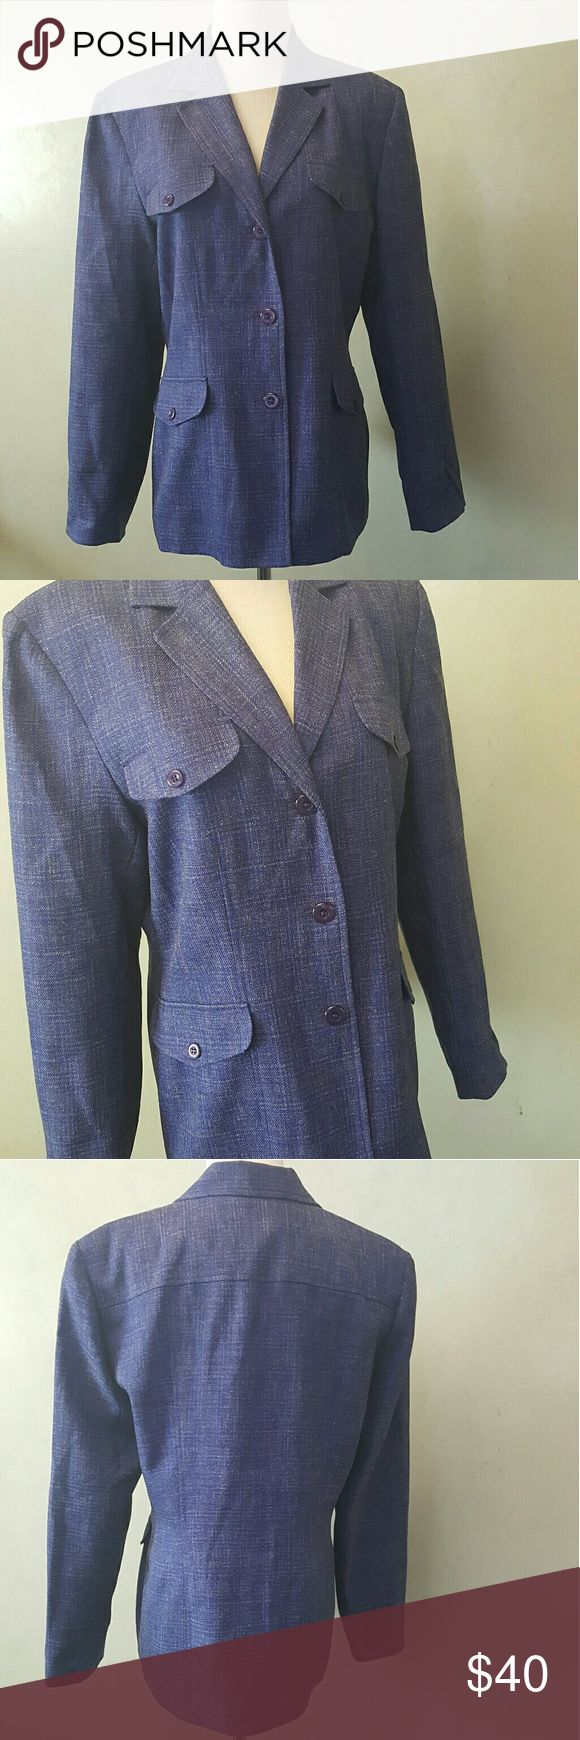 Blacker by Stanley Blacker blazer Blacker by Stanley Blacker royal blue blazer in perfect condition. Not actual pockets. Stanley Blacker Jackets & Coats Blazers